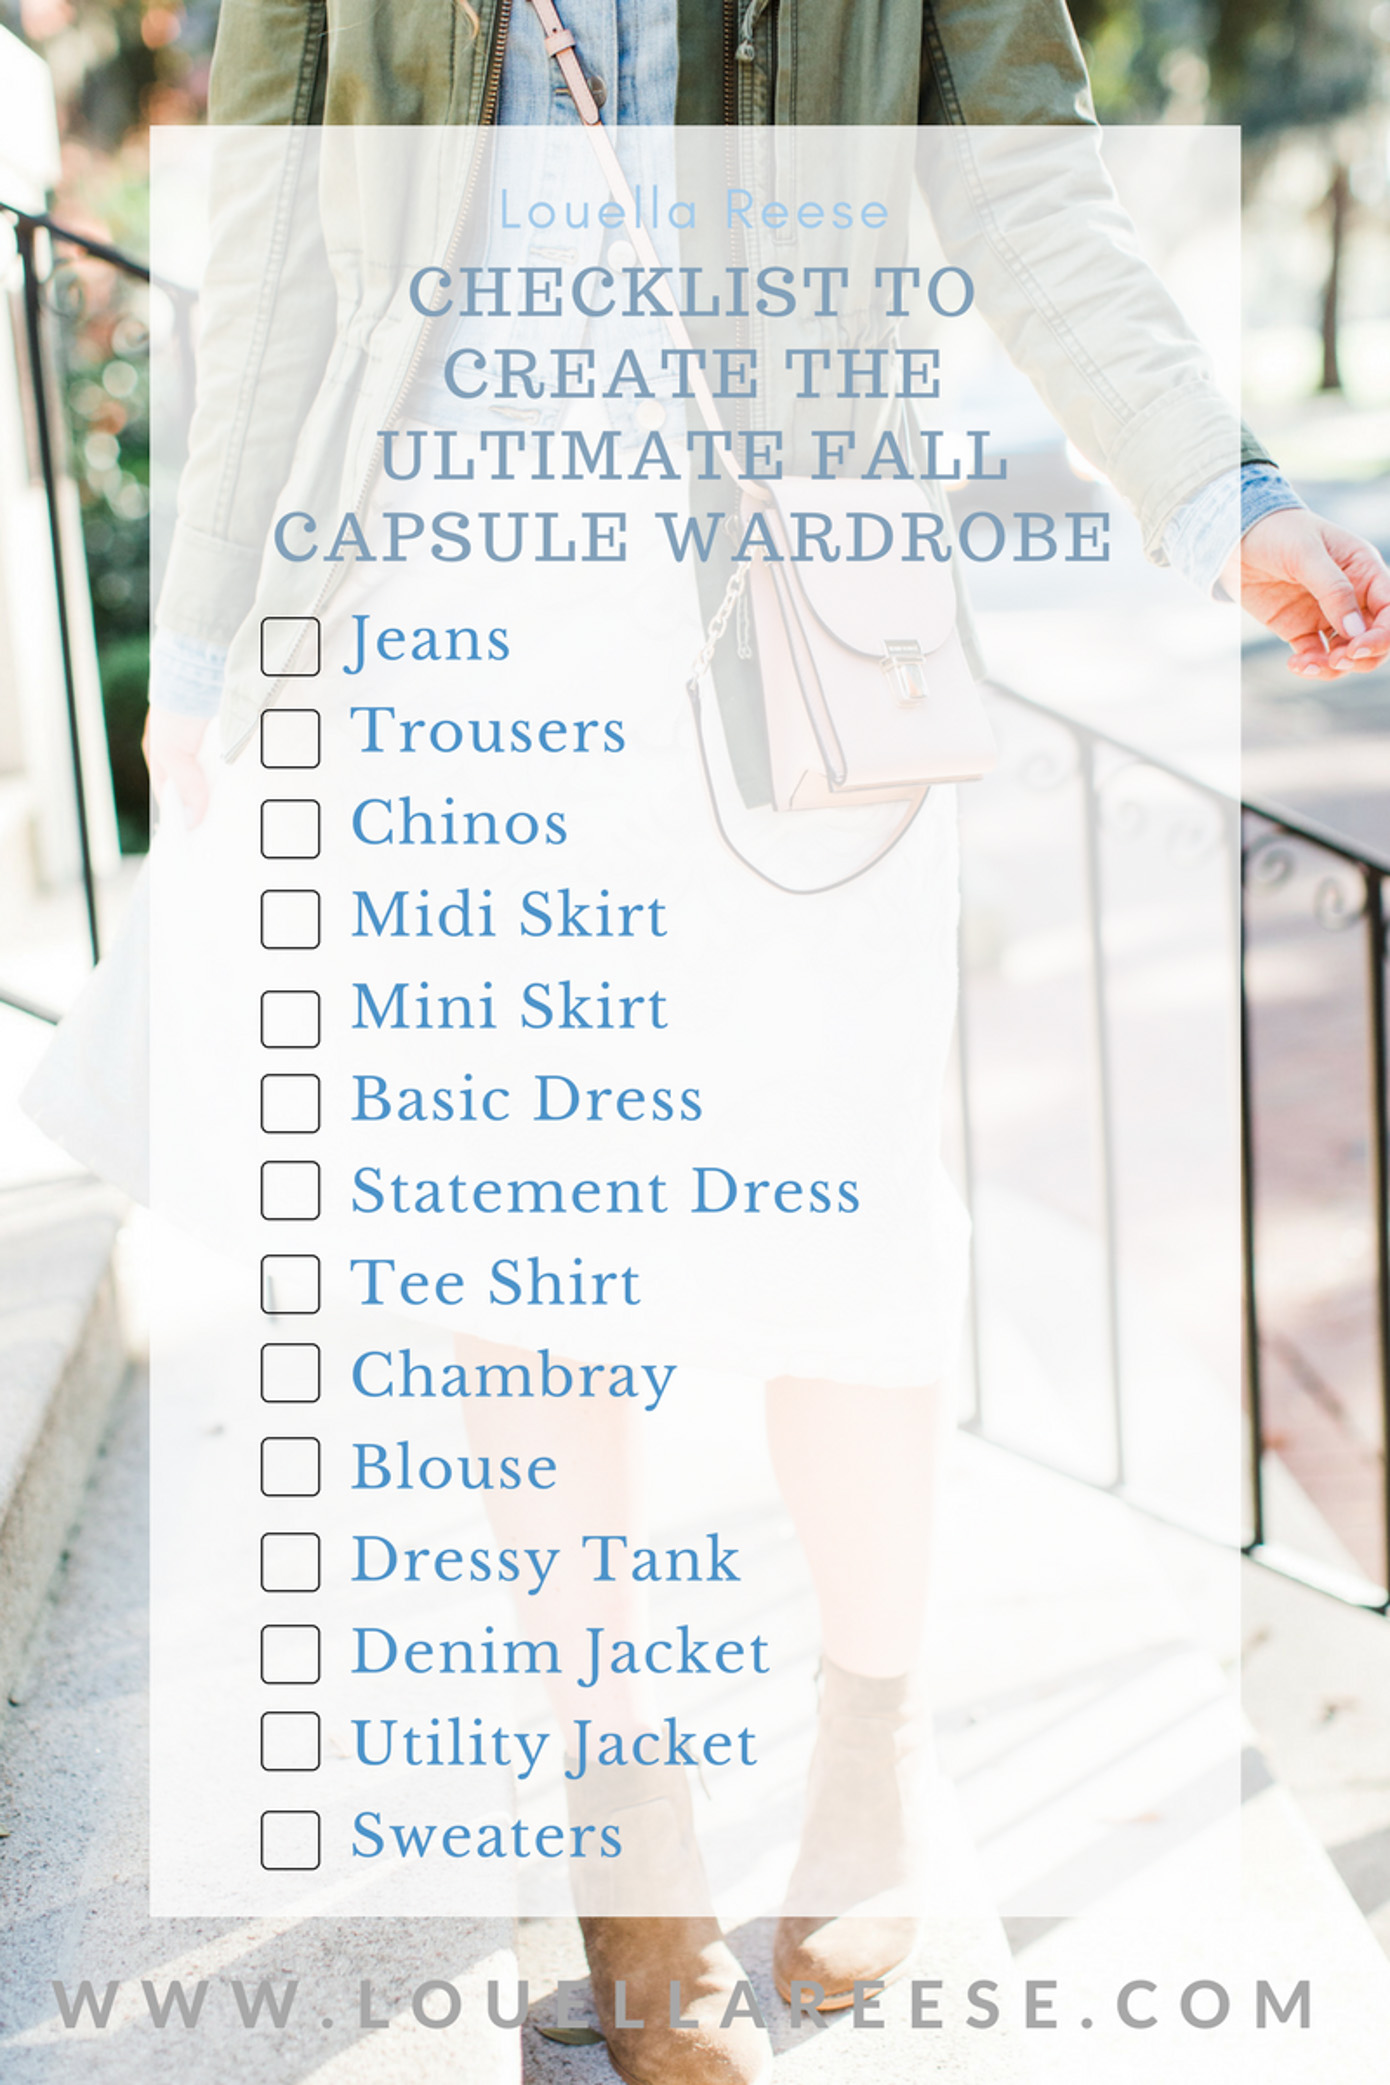 How to Build a Fall Capsule Wardrobe | Capsule Wardrobe Check List | Louella Reese Life & Style Blog